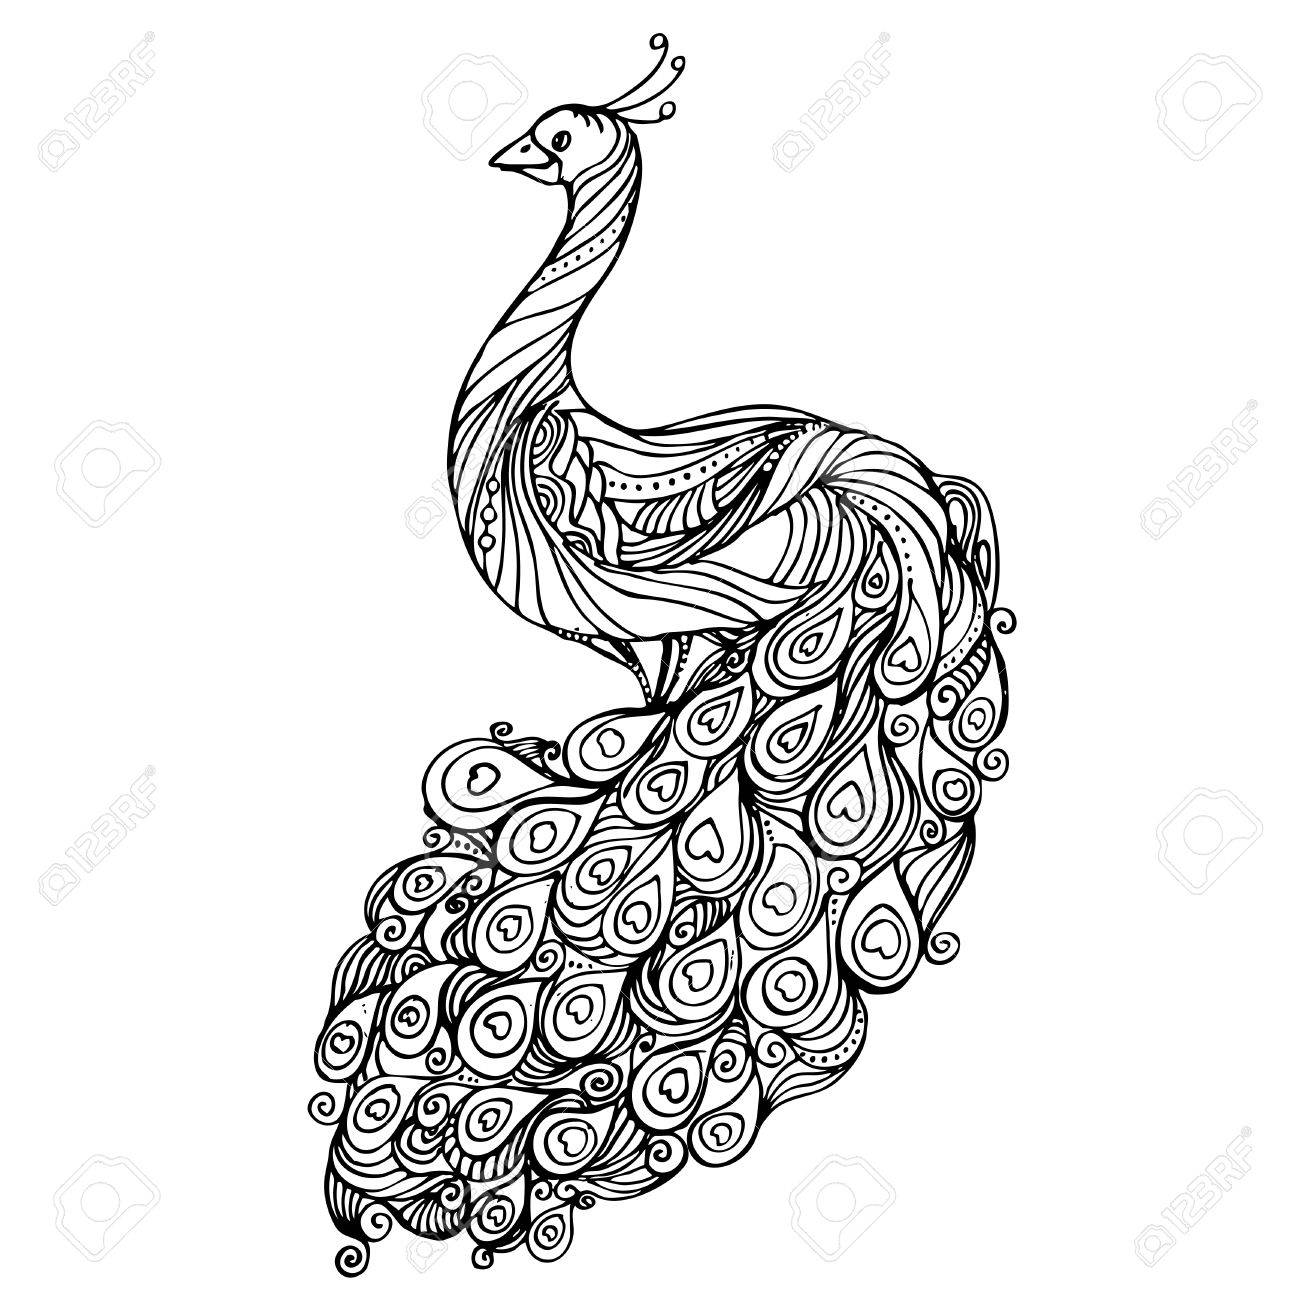 Vintage pattern black and white doodle peacock. design. Sketch.